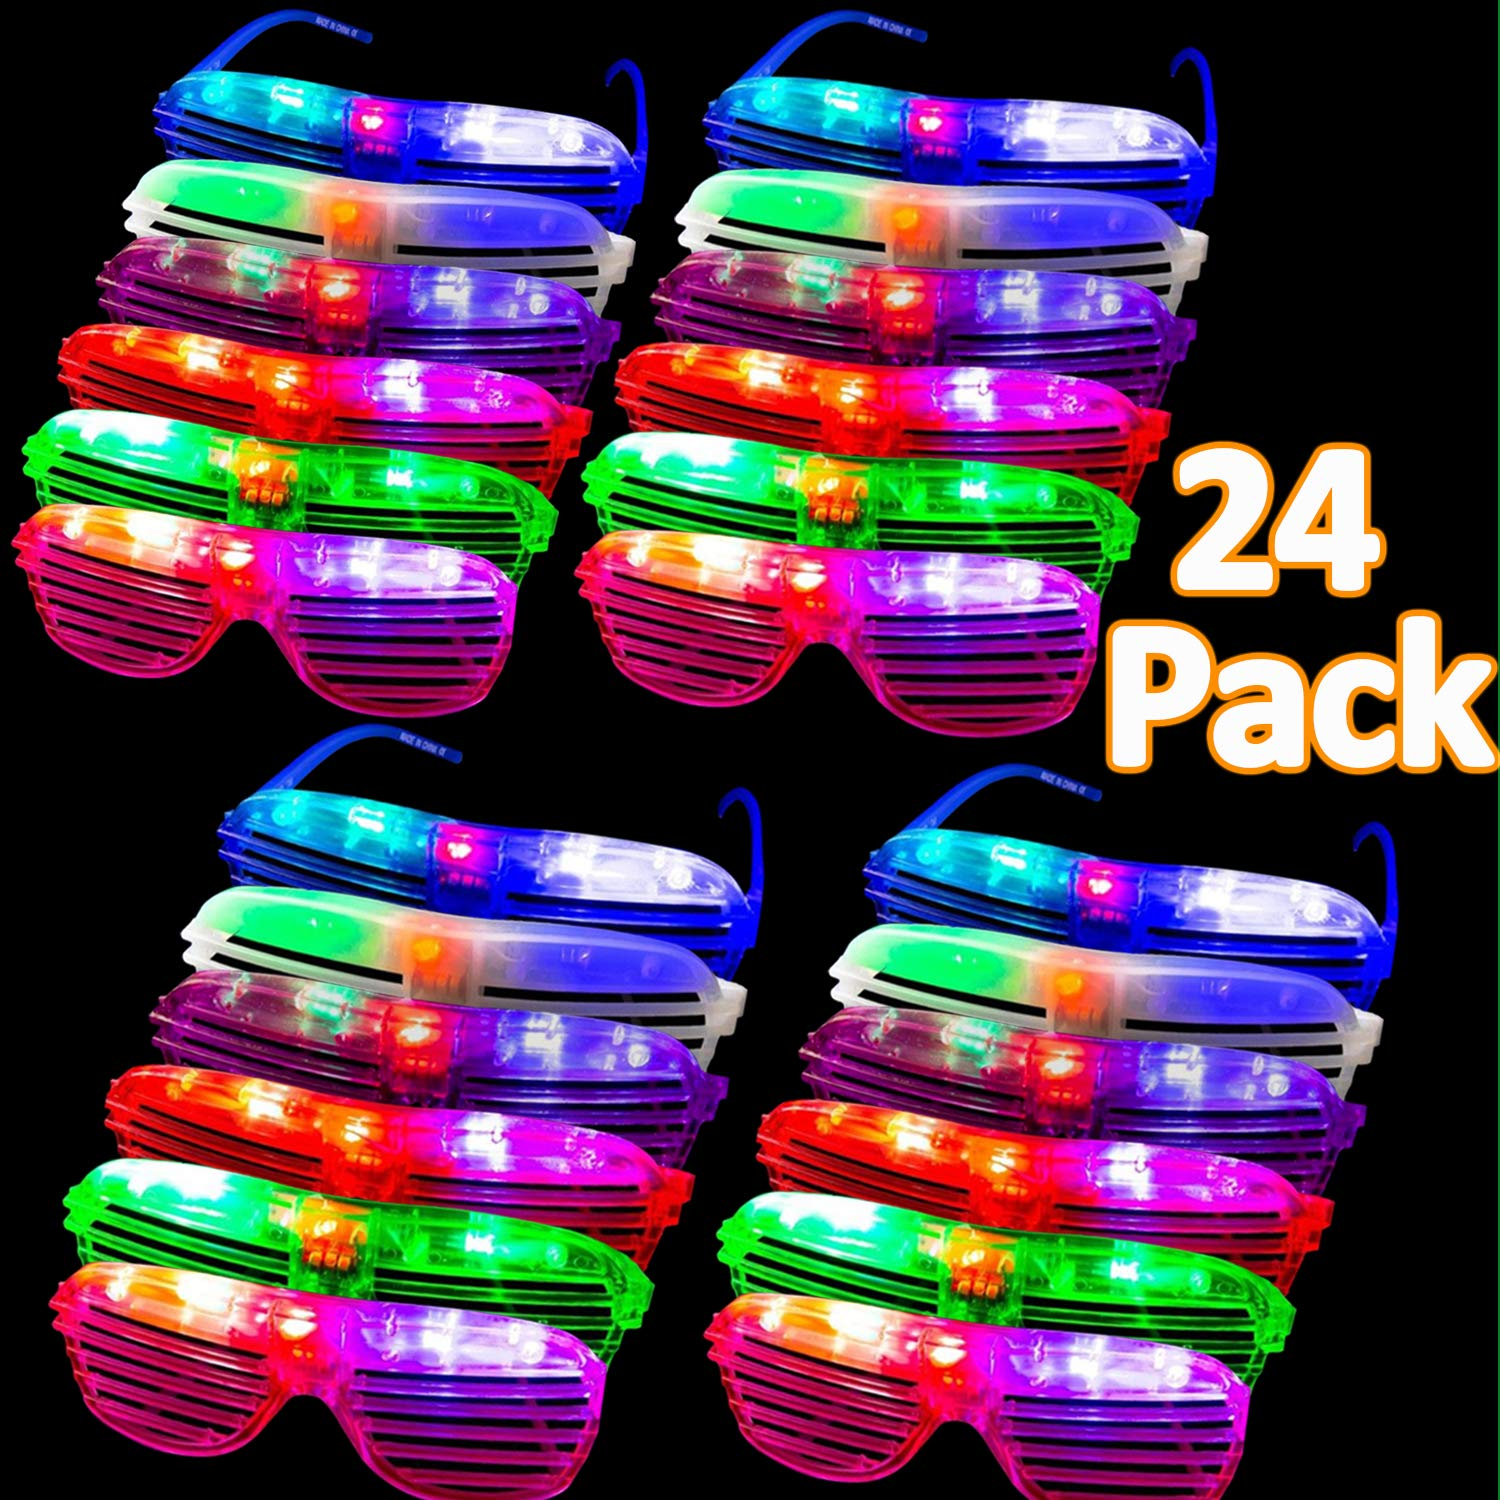 Randosk 24 Pack LED Glasses Glow in The Dark Party Favors Supplies for Kids Light Up Toy Bulk with Flash Light 3 Replaceable Battery for Mother's Day Birthday Holiday Outdoor Party